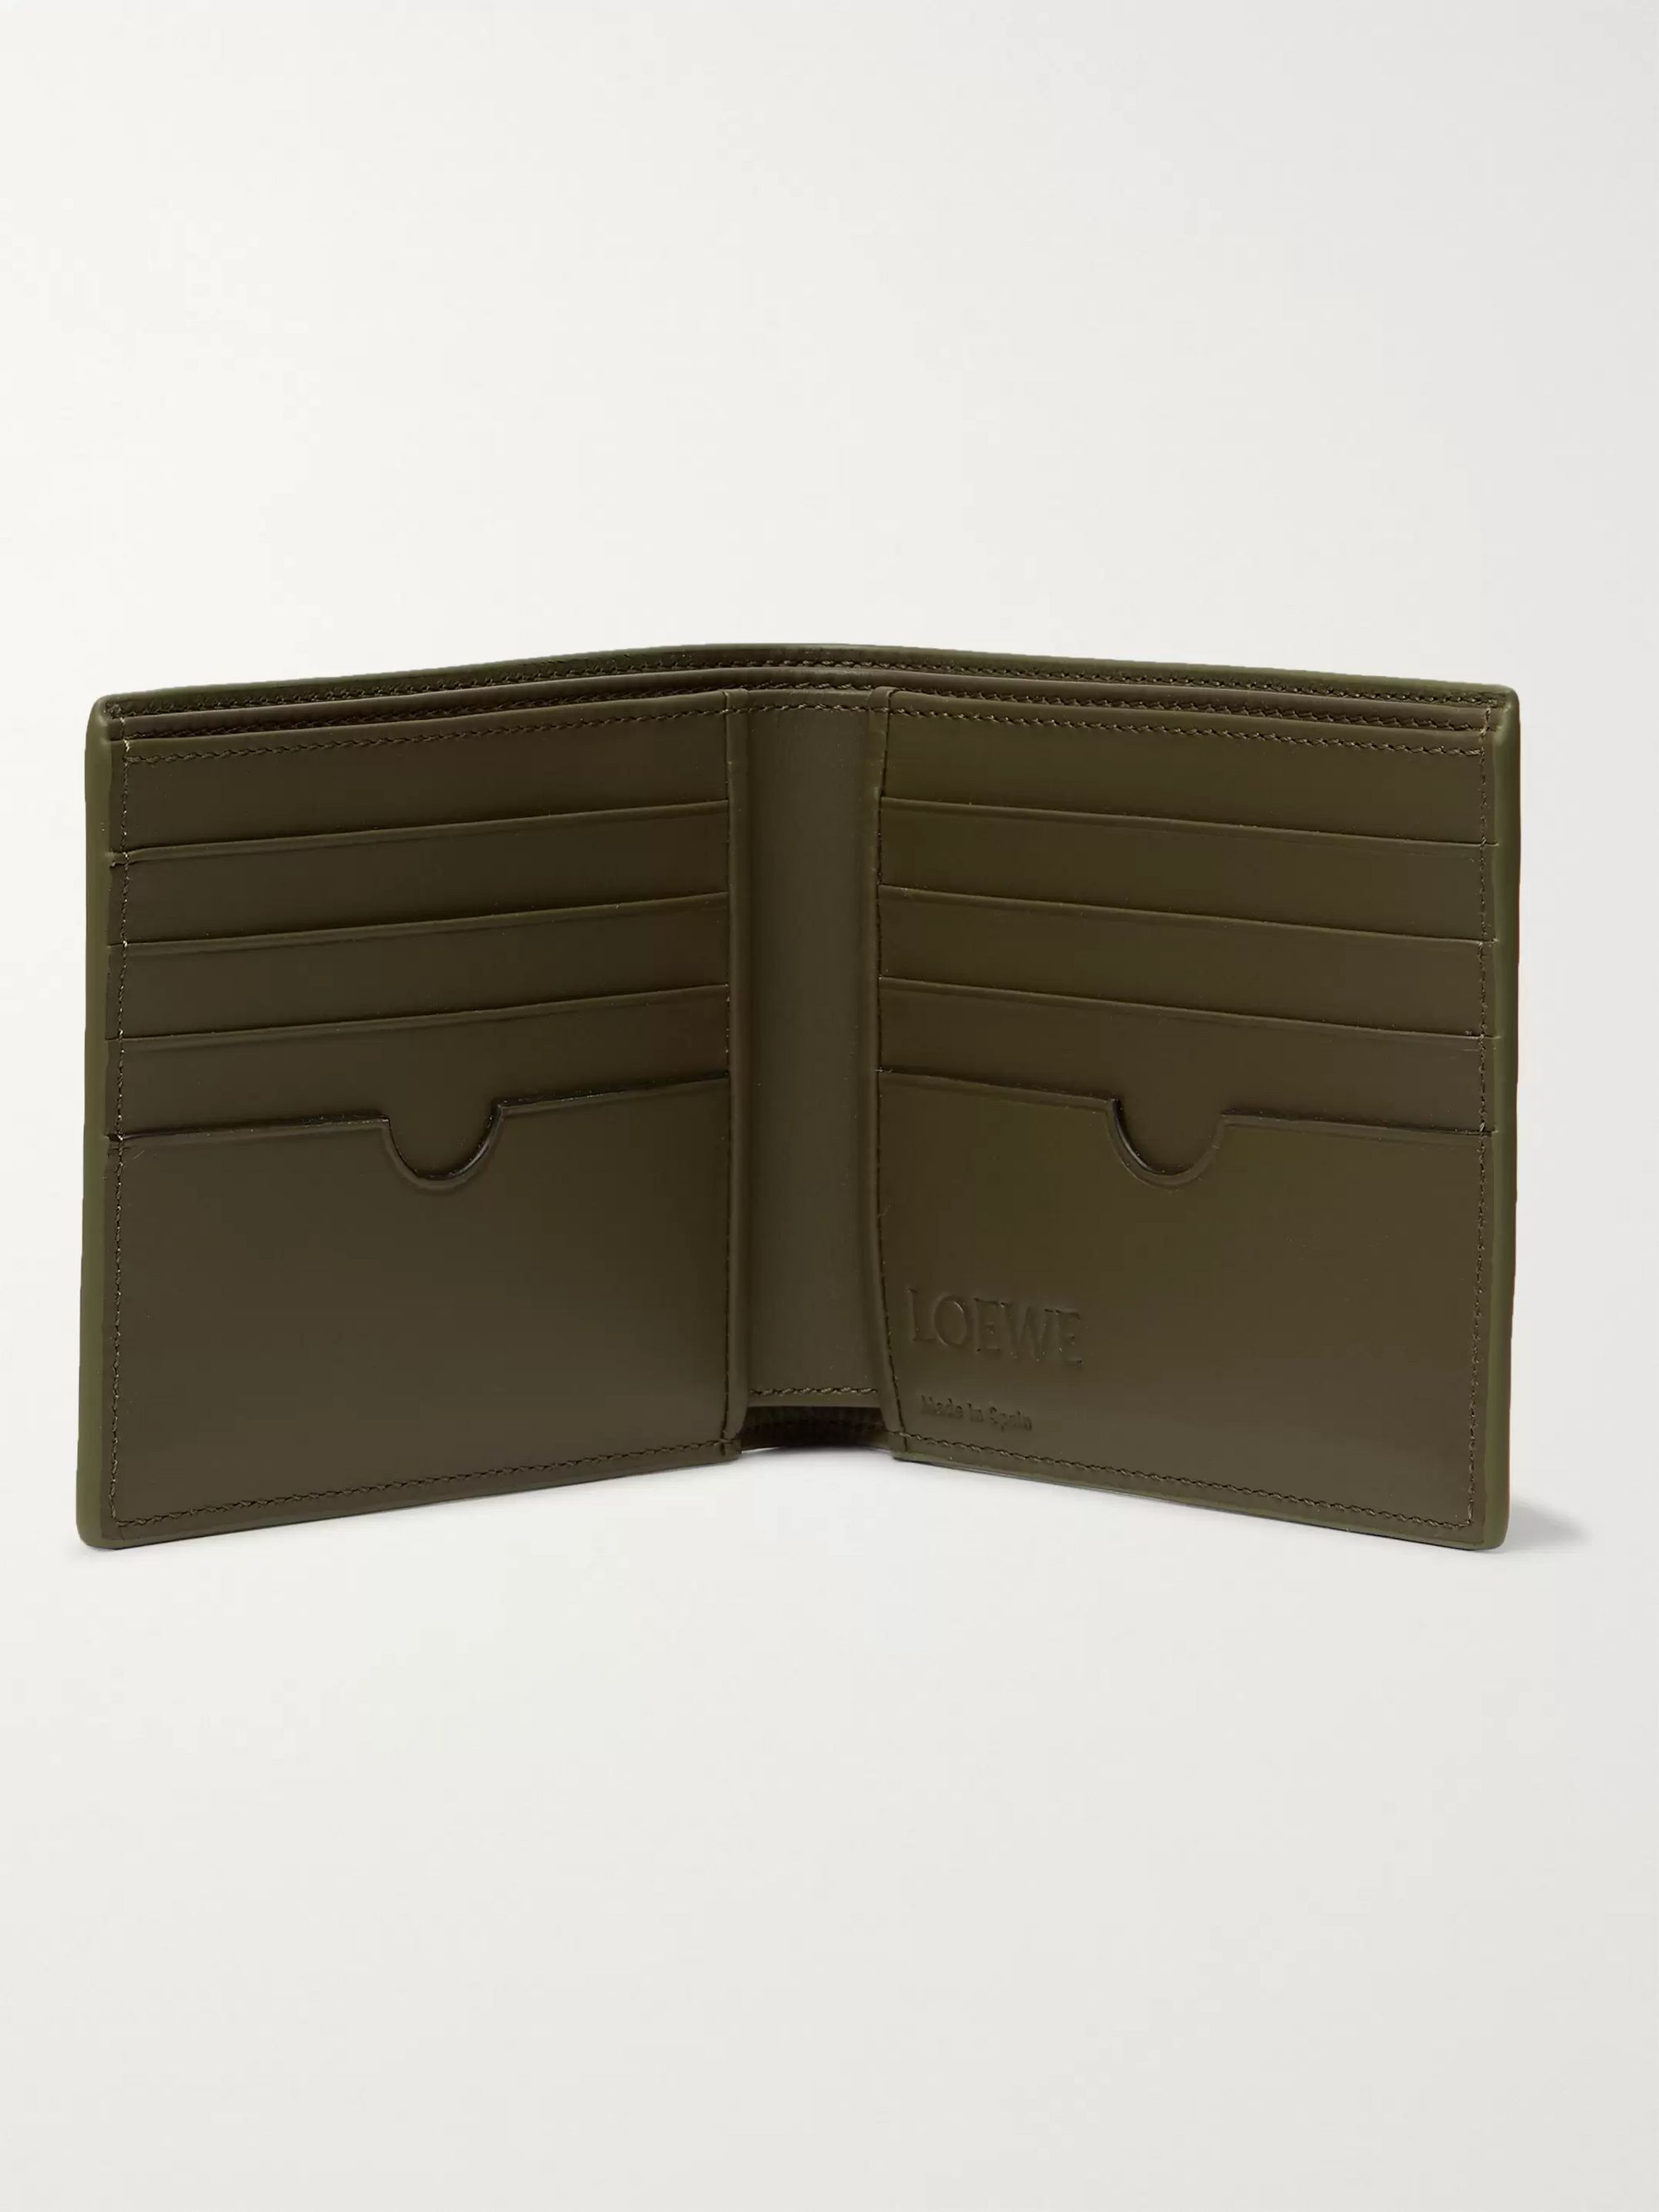 Loewe Logo-Debossed Leather Billfold Wallet